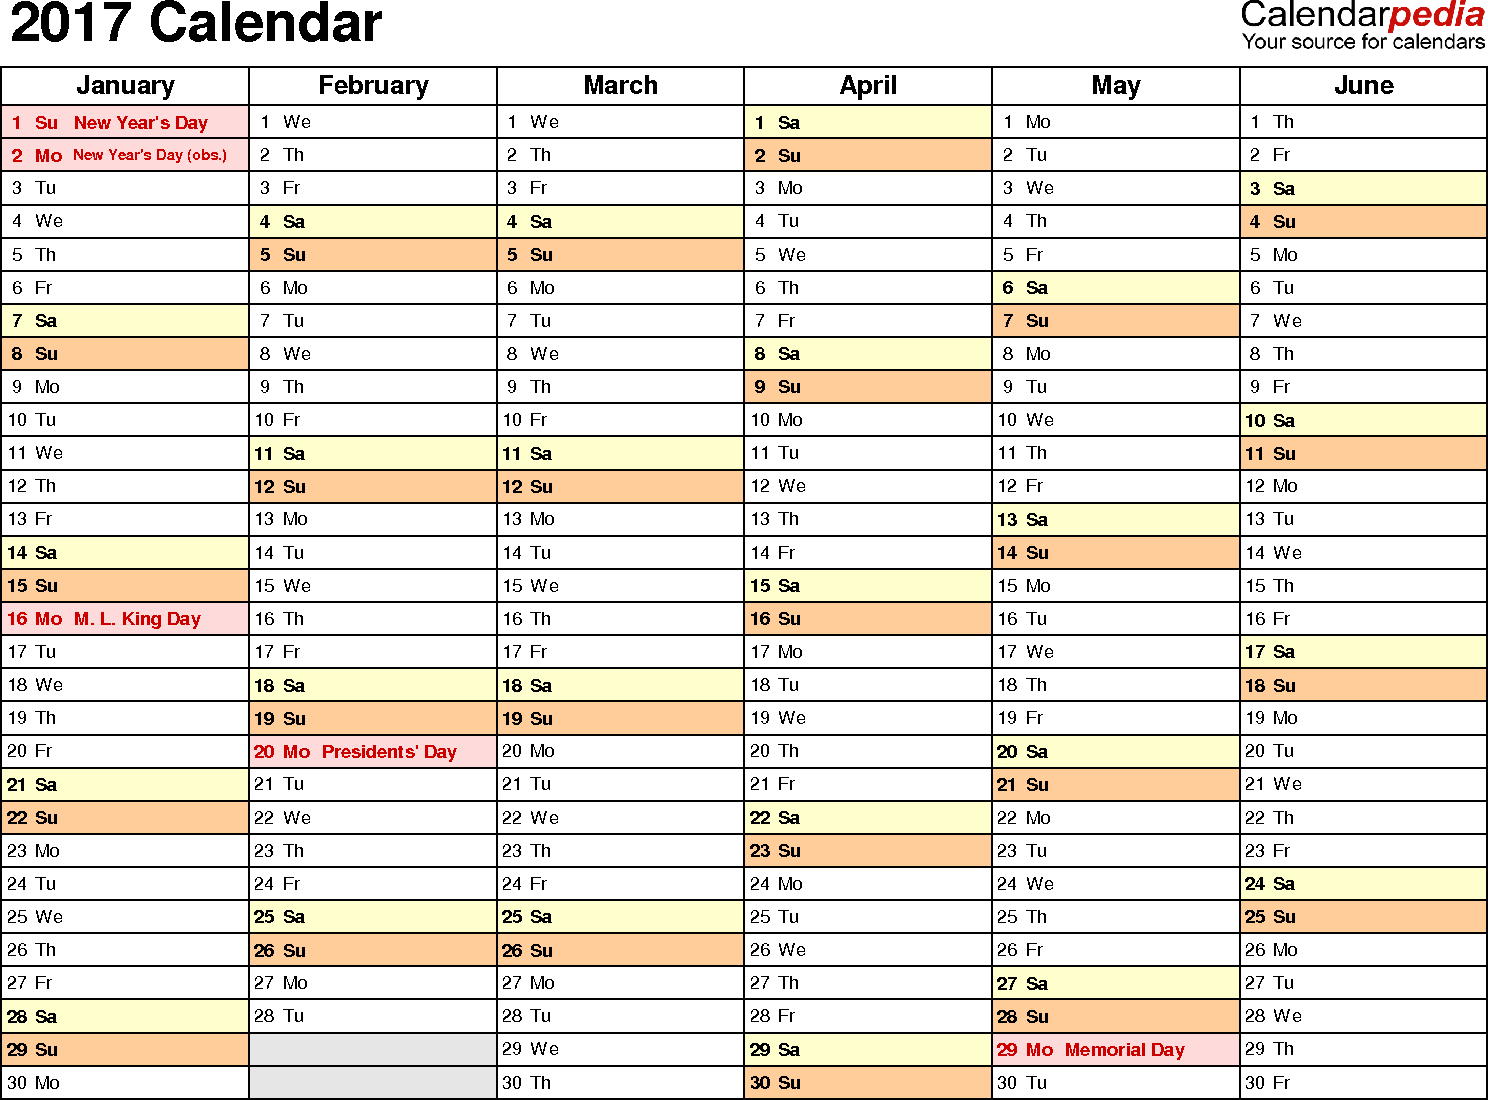 Ediblewildsus  Mesmerizing  Calendar  Download  Free Printable Excel Templates Xls With Fetching Template   Calendar For Excel Months Horizontally  Pages Landscape Orientation With Cool Prince Regent Hotel Excel London Also Active Ankle Excel In Addition Excel If  Conditions And Creating A Project Timeline In Excel As Well As Download Microsoft Excel  Free Additionally Excel Formula To Calculate Days Between Two Dates From Calendarpediacom With Ediblewildsus  Fetching  Calendar  Download  Free Printable Excel Templates Xls With Cool Template   Calendar For Excel Months Horizontally  Pages Landscape Orientation And Mesmerizing Prince Regent Hotel Excel London Also Active Ankle Excel In Addition Excel If  Conditions From Calendarpediacom